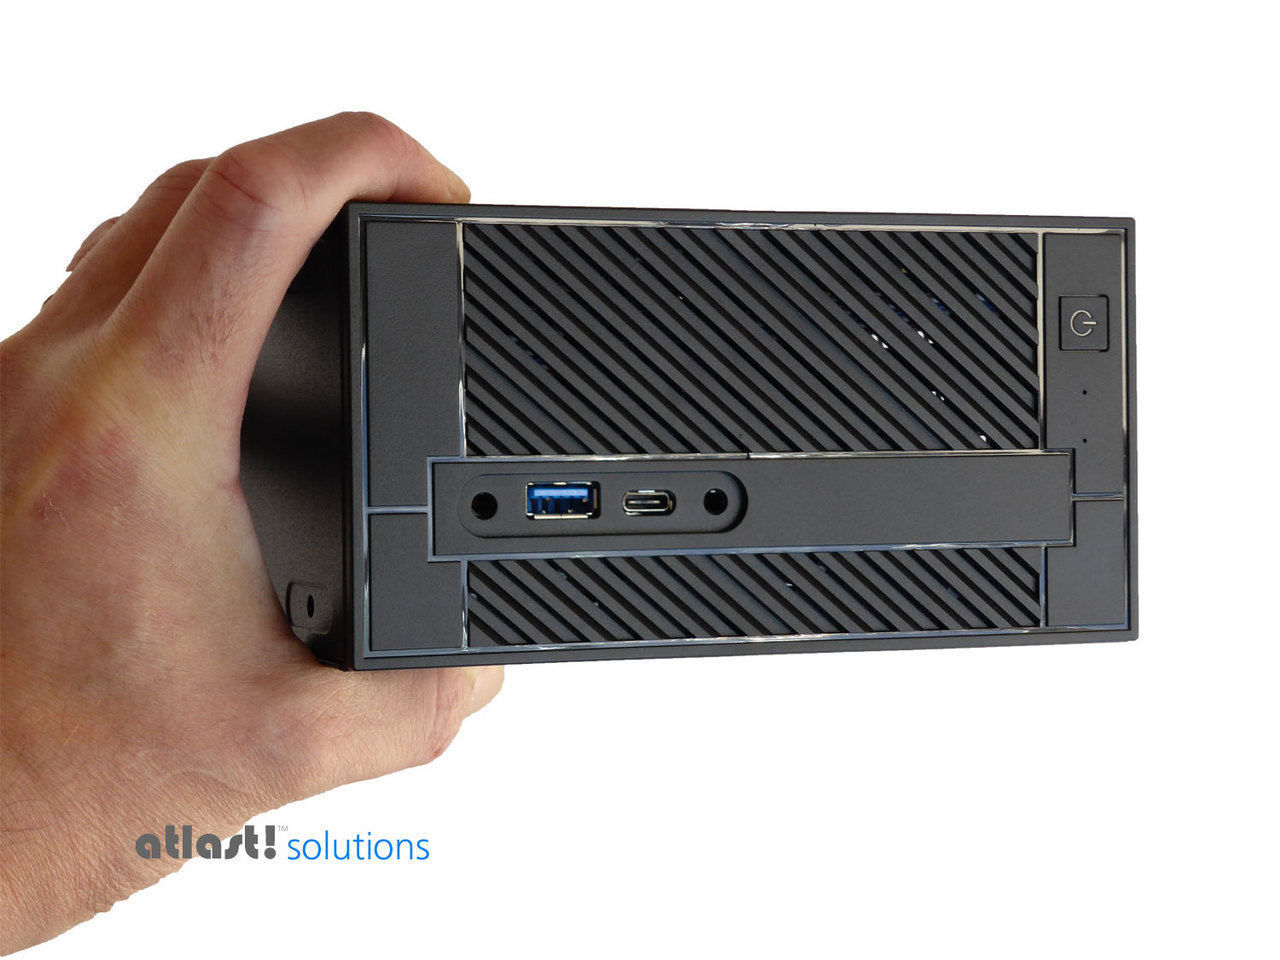 ASRock DeskMini 110 Mini PC, Core i3 7100, 8GB, 256GB PCIe SSD